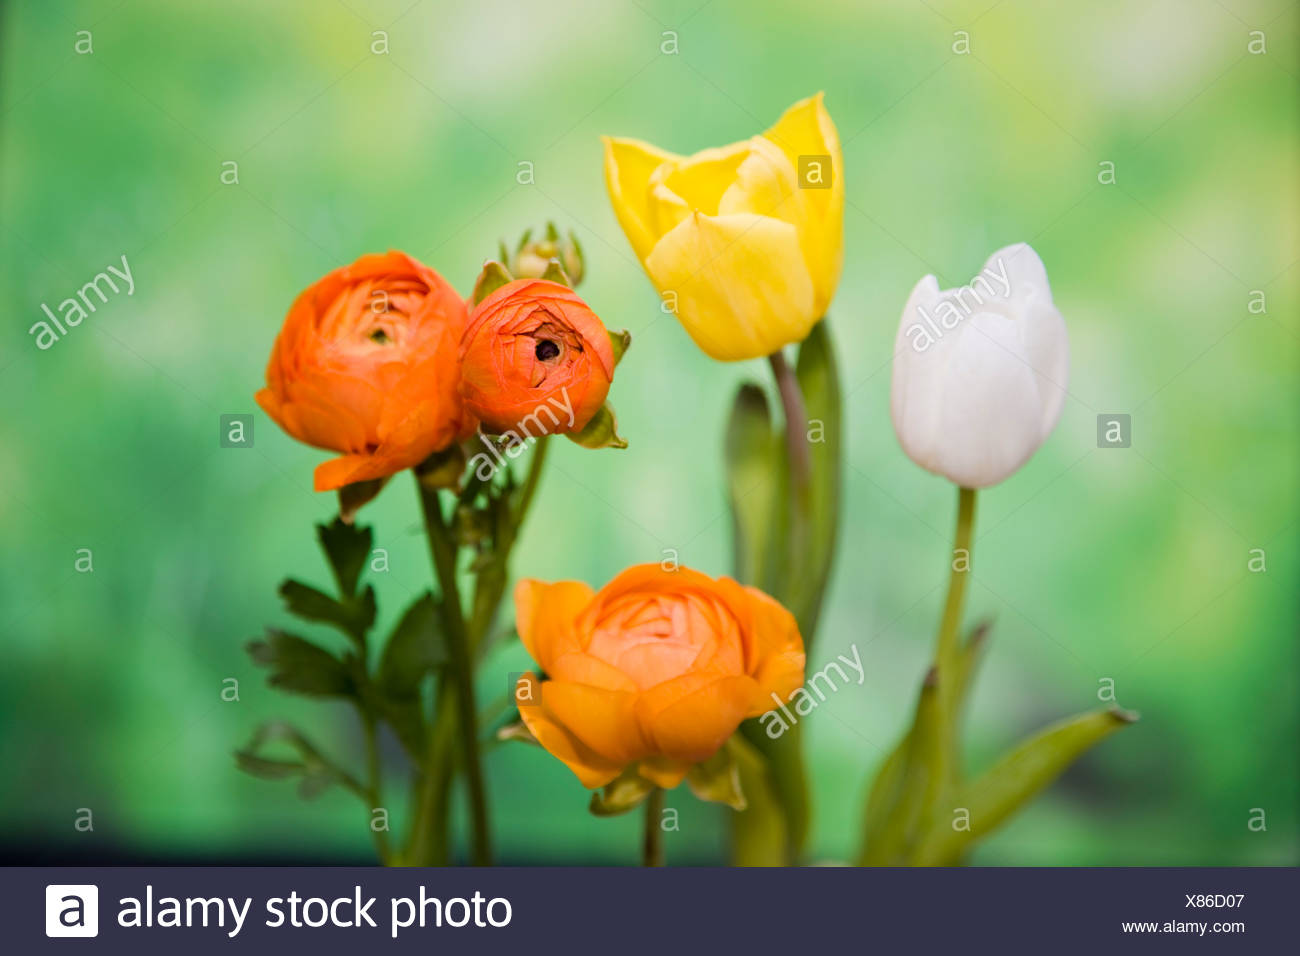 Various types of flowers - Stock Image